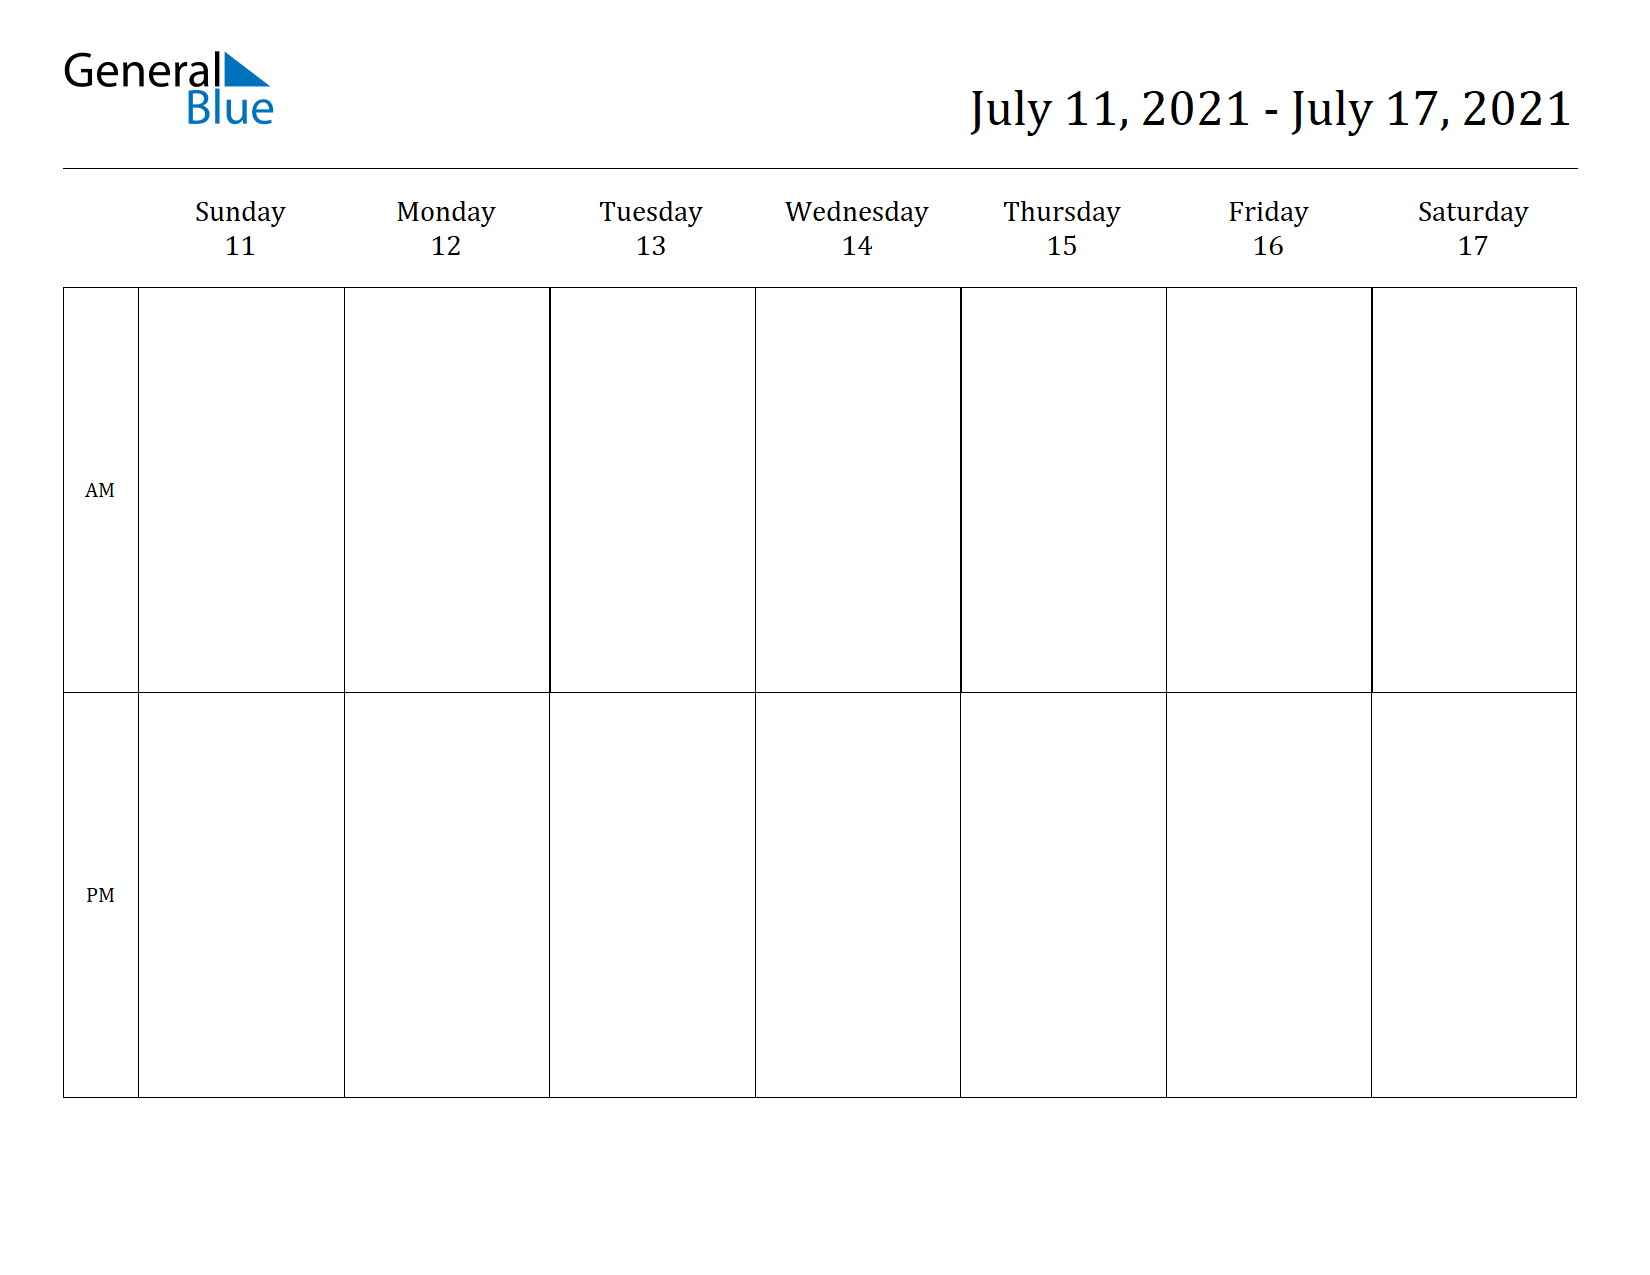 Weekly Calendar for Jul 11, 2021 to Jul 17, 2021